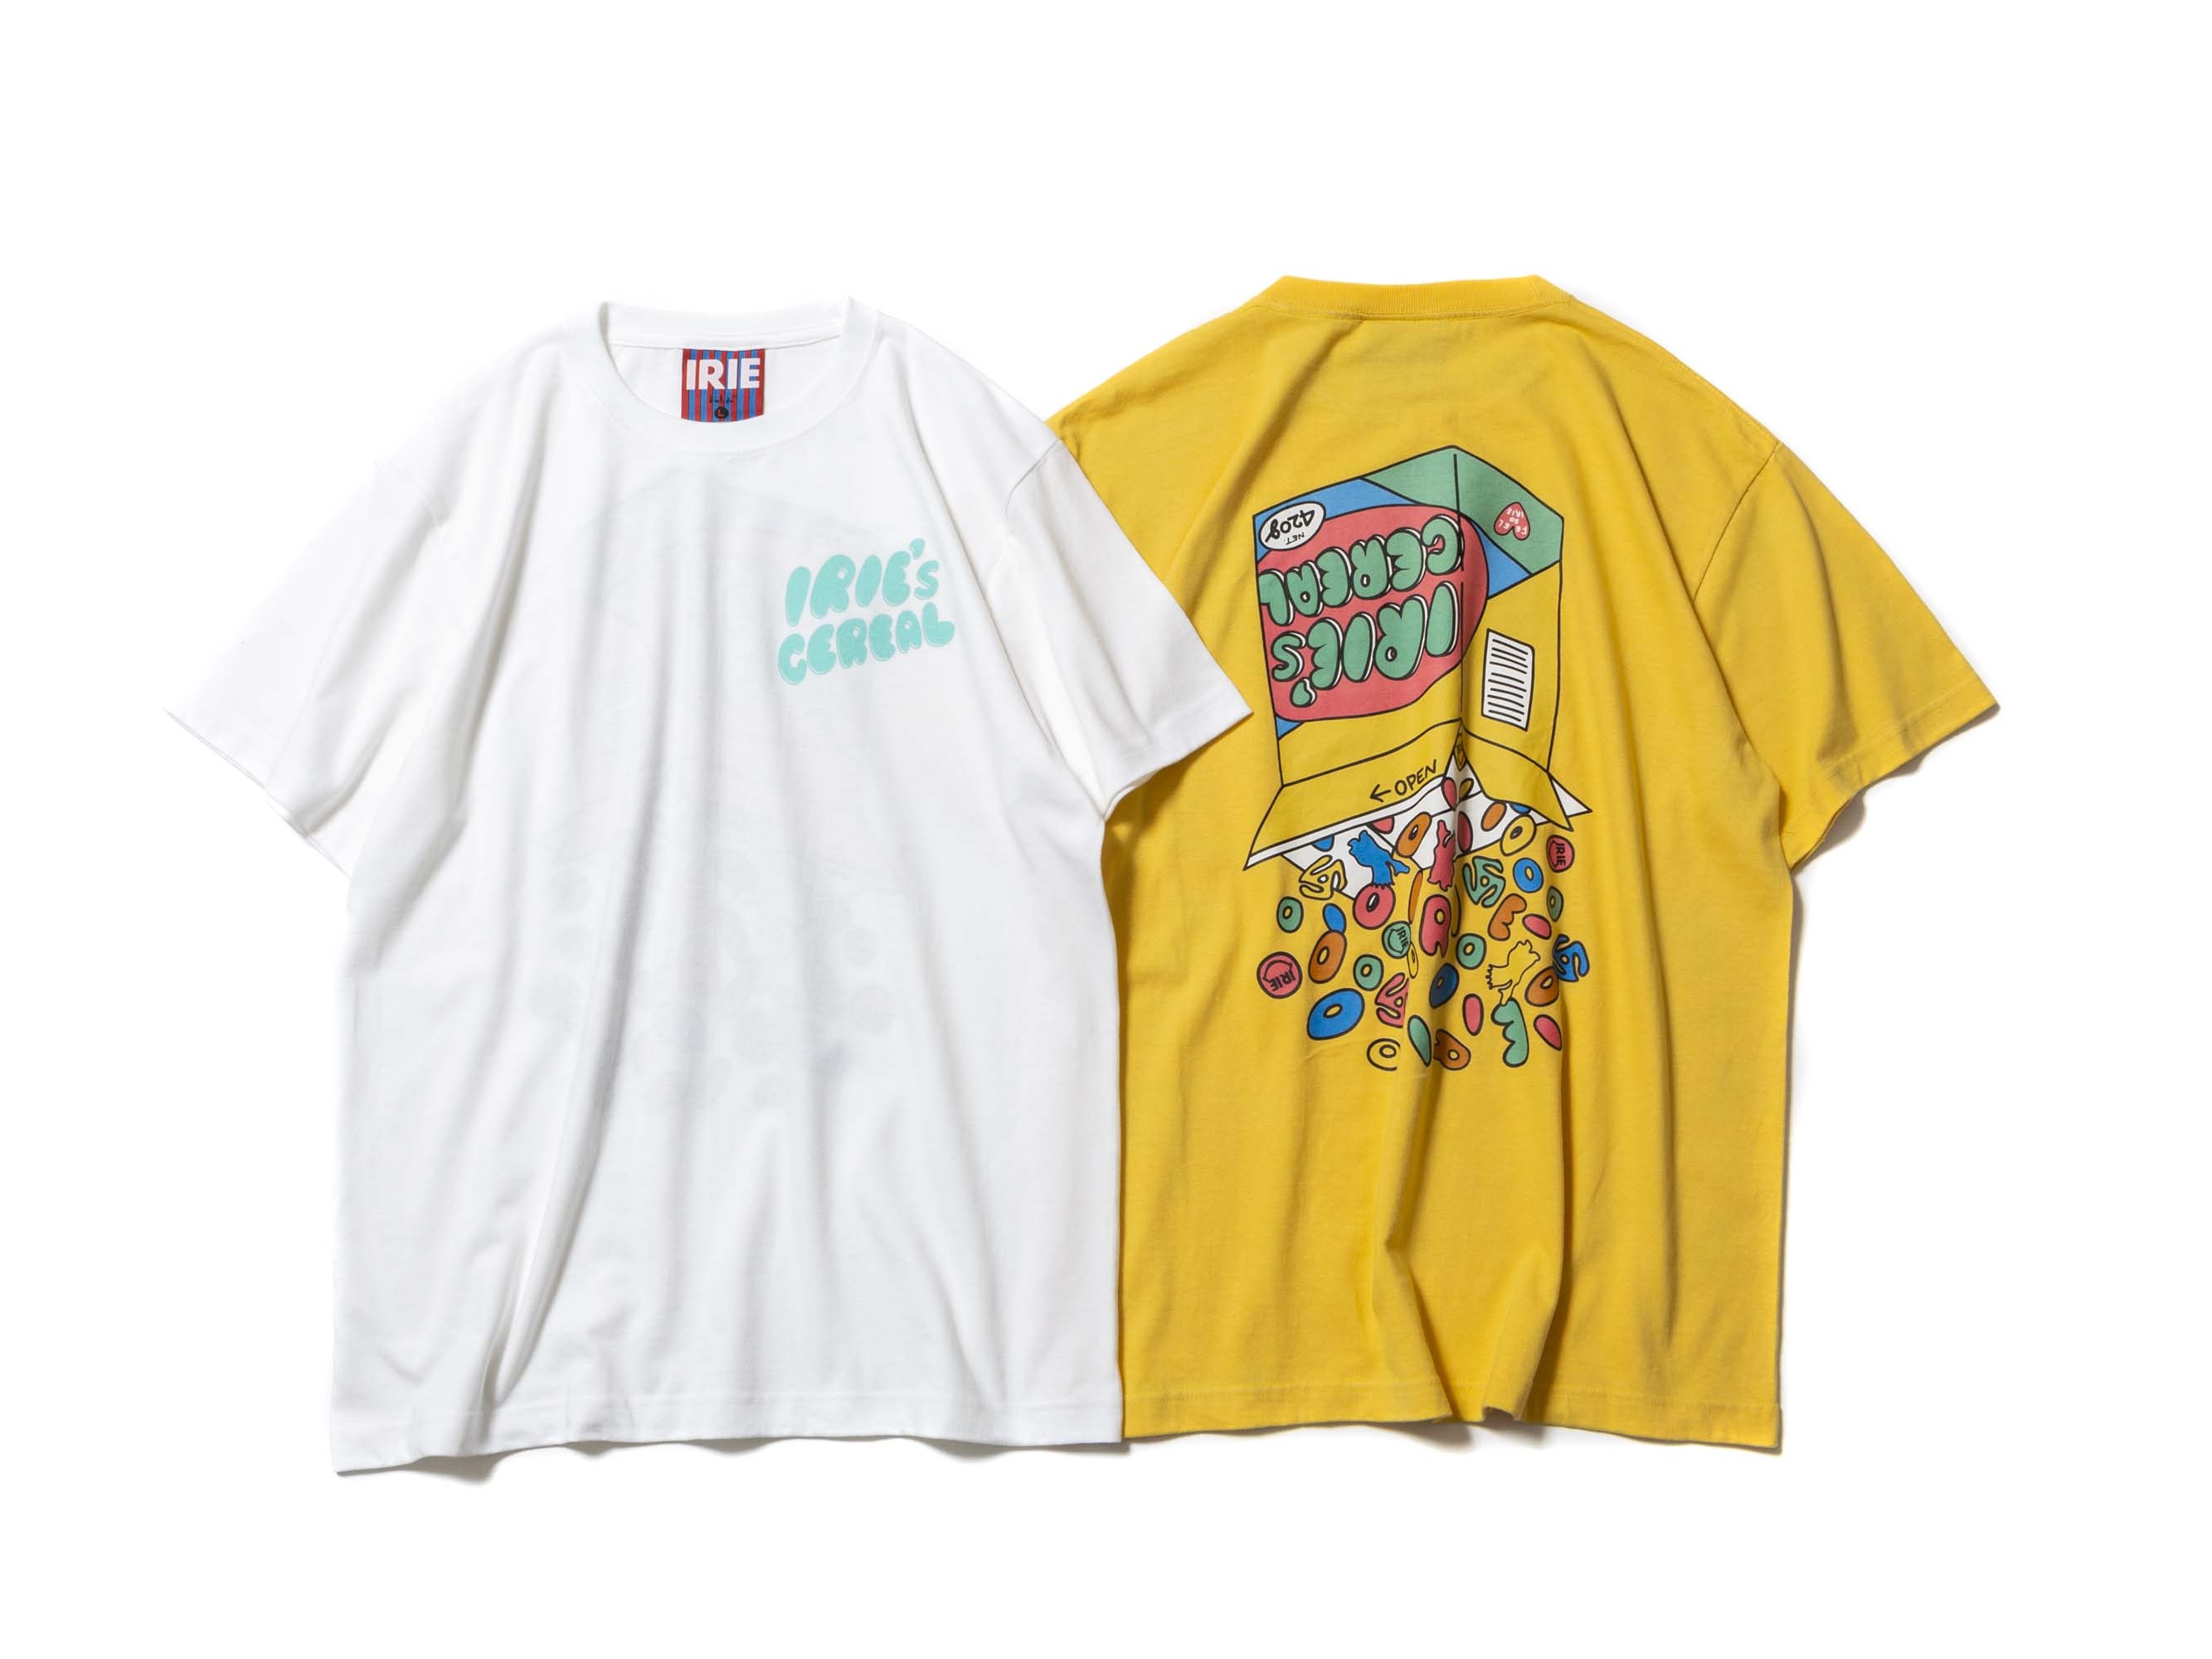 IRIE`S CEREAL TEE - IRIE by irielife